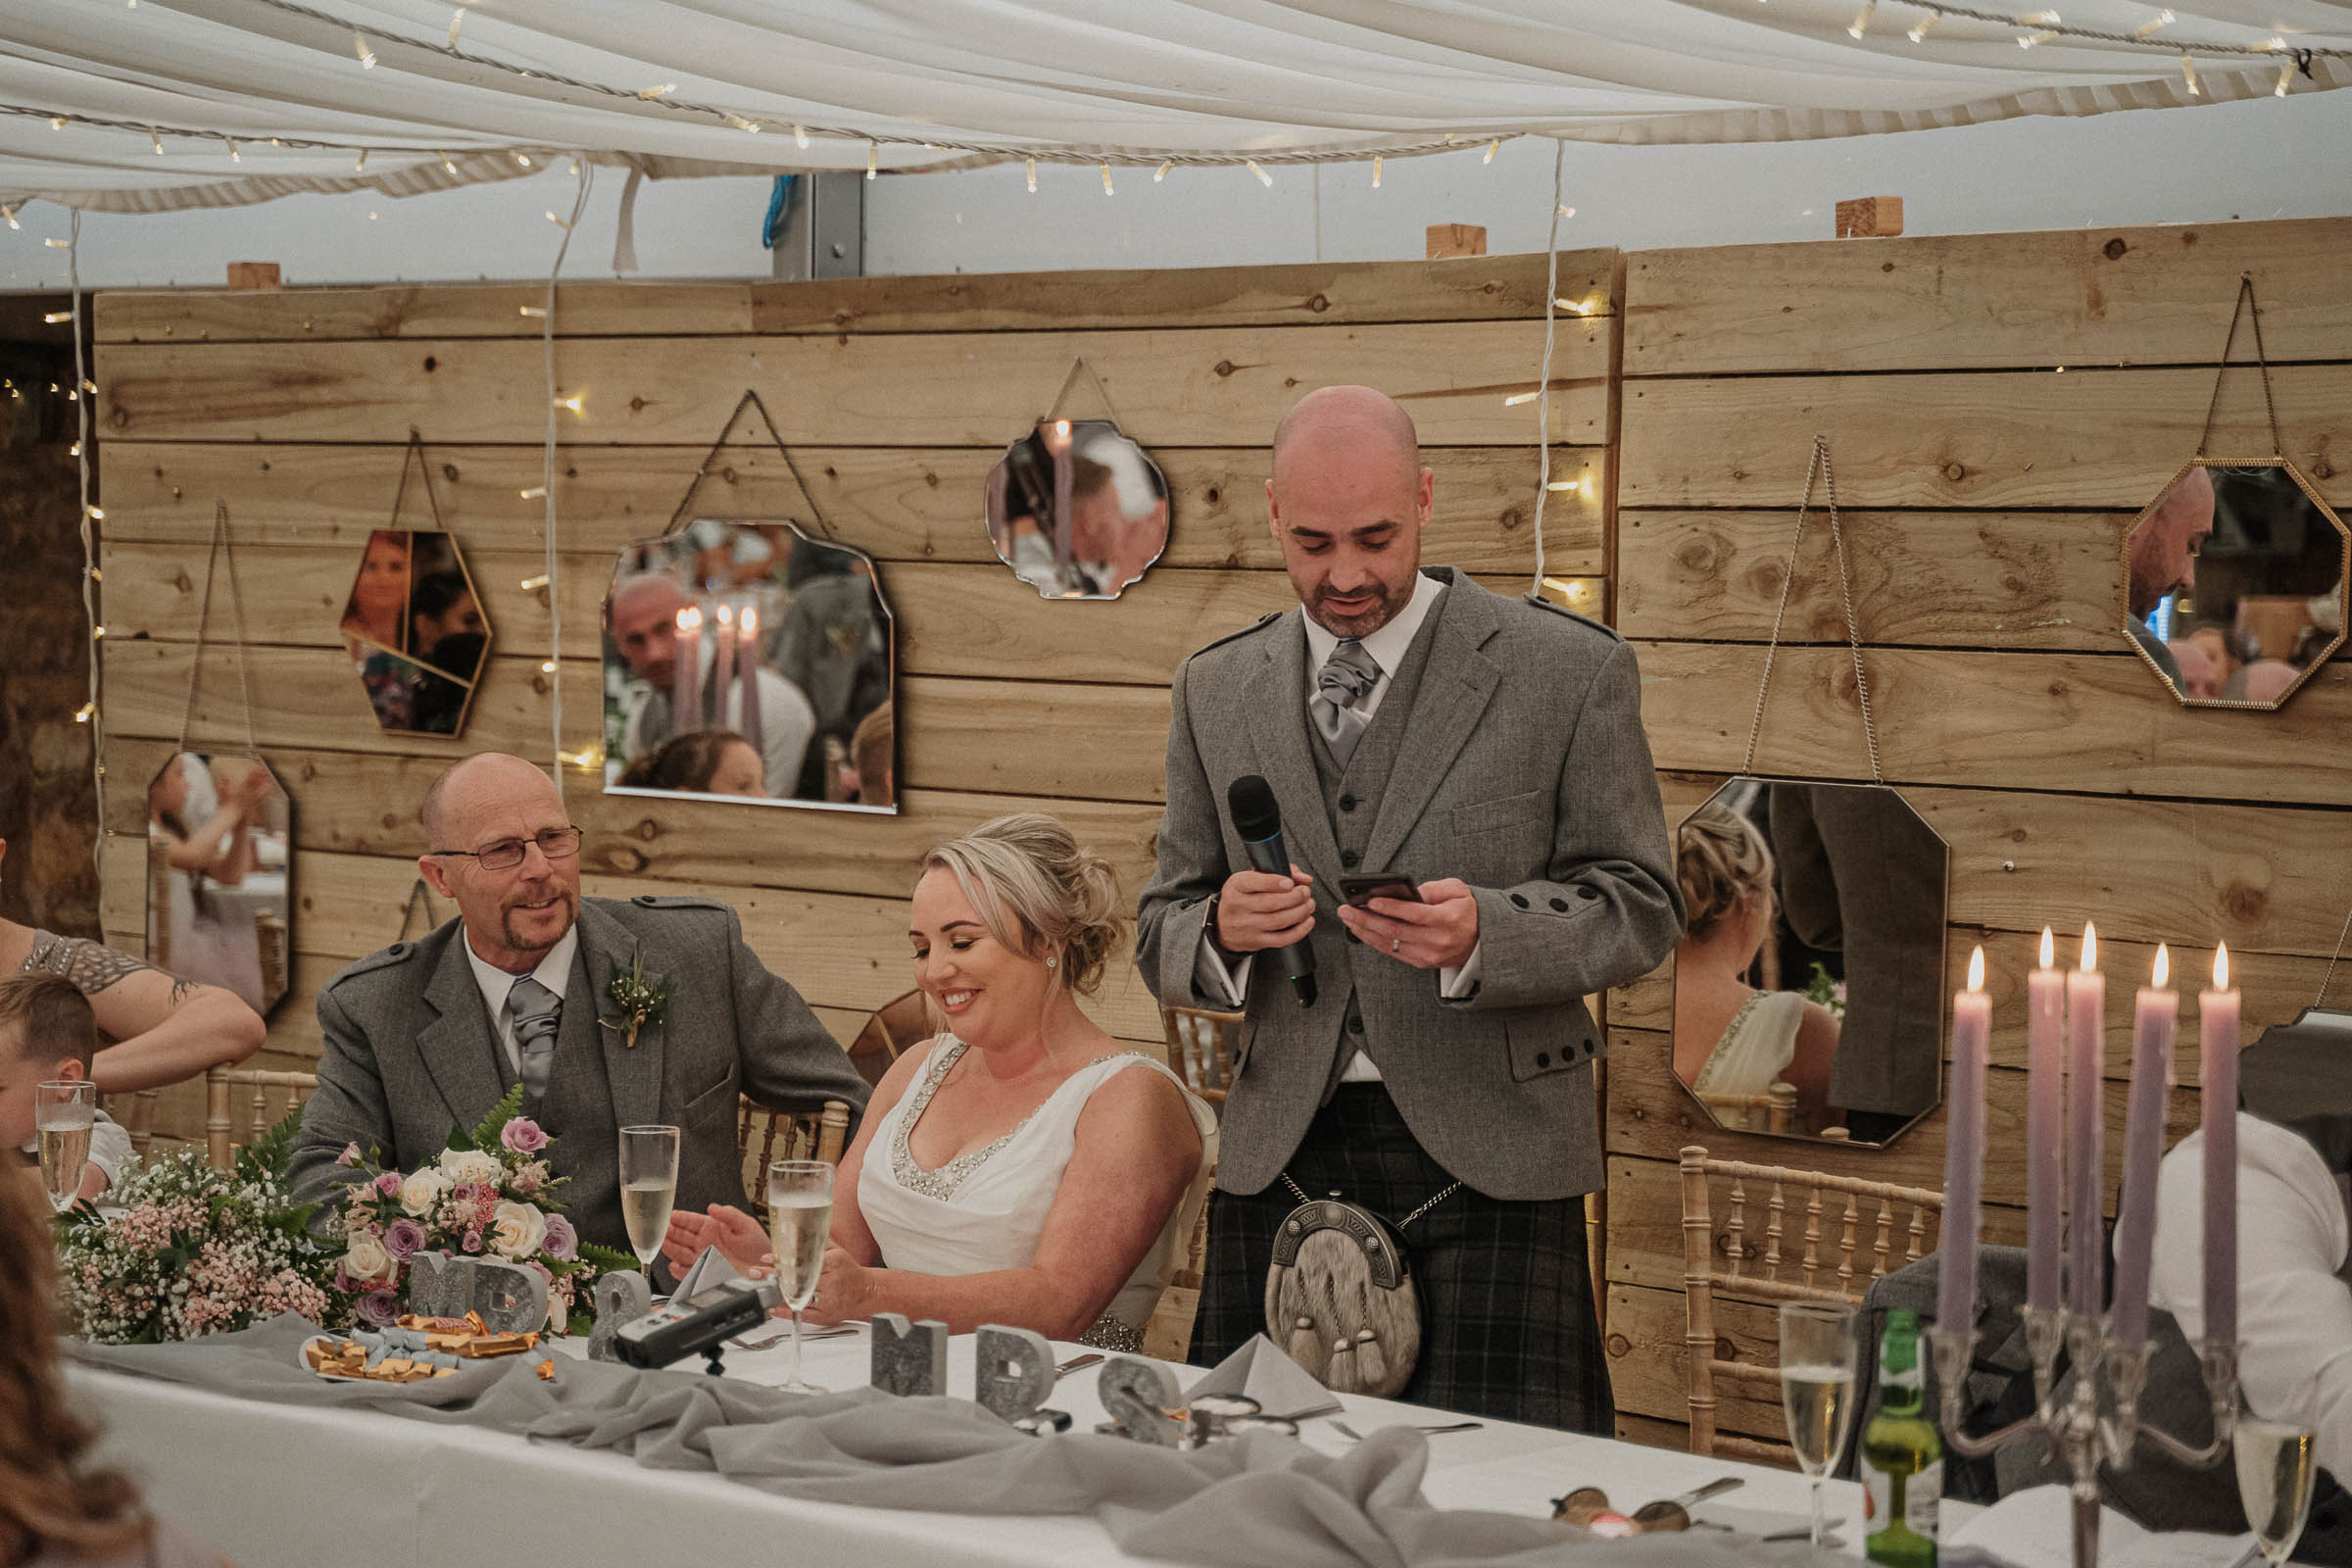 cowshed-crail-wedding-dearlyphotography (22 of 26).jpg